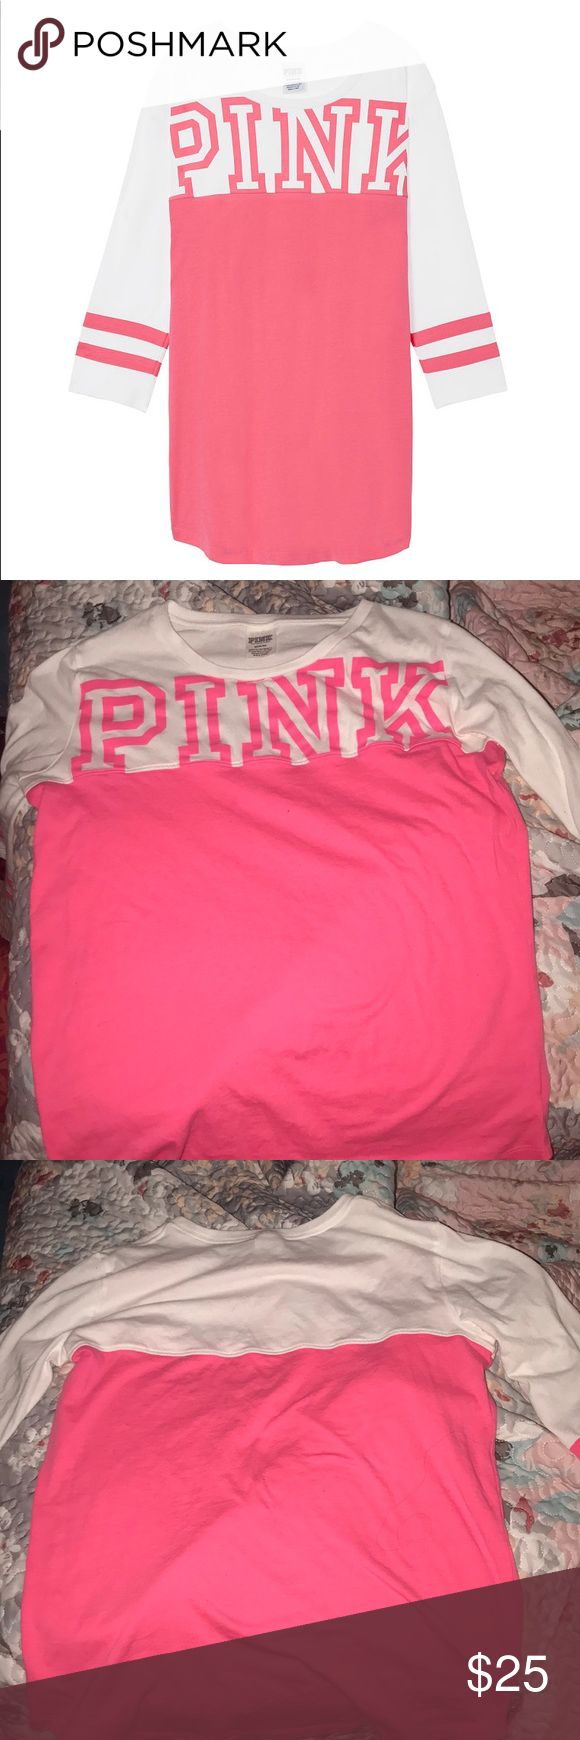 Victoria Secret Pink Football Tee Worn once!!! No stains or fading PINK Victoria's Secret Tops